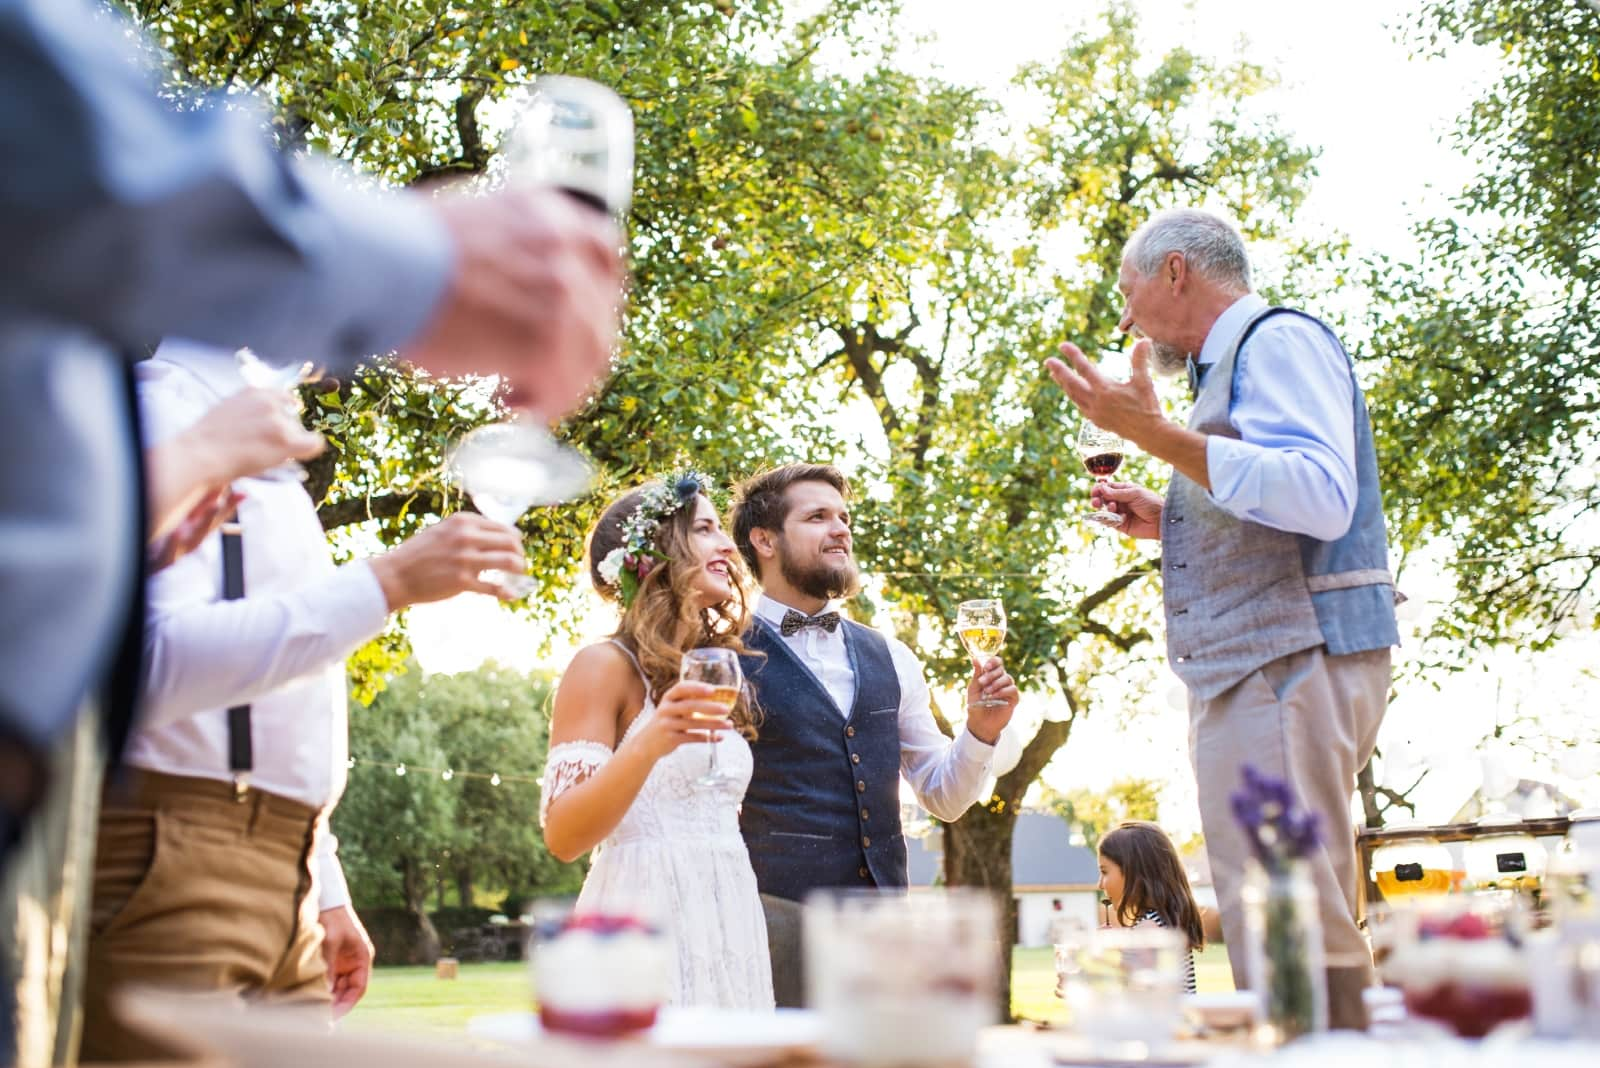 man talking to groom and bride while holding wine glass